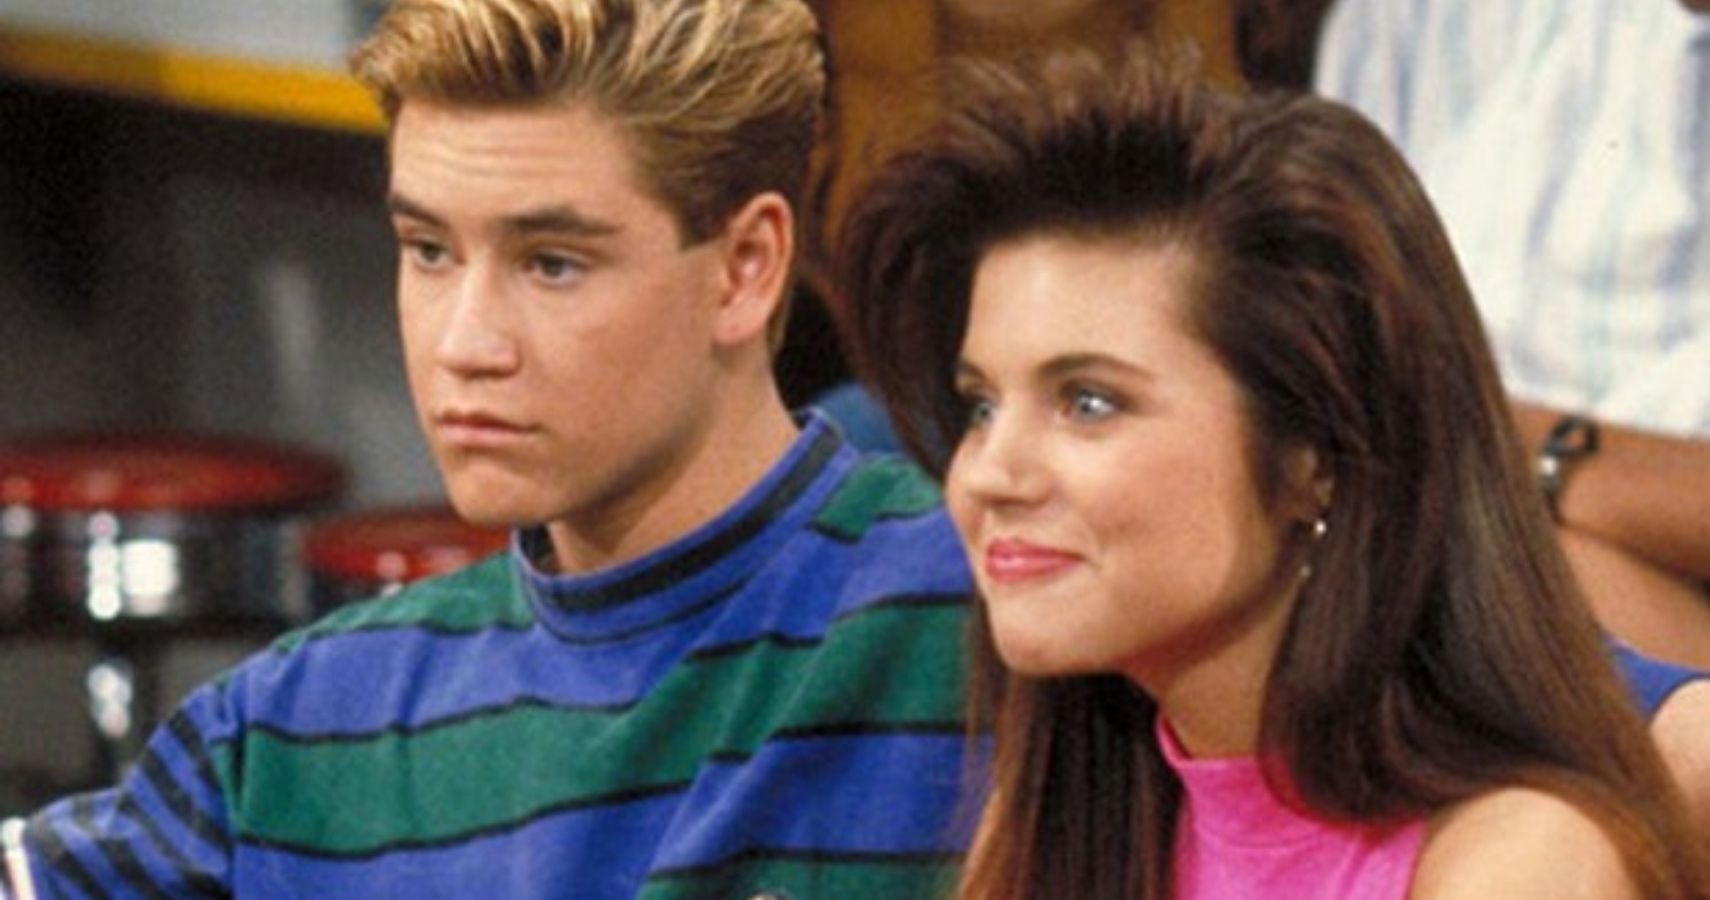 'Saved By The Bell' Trailer: Featuring 'Zack' Morris & Kelly Kapowski